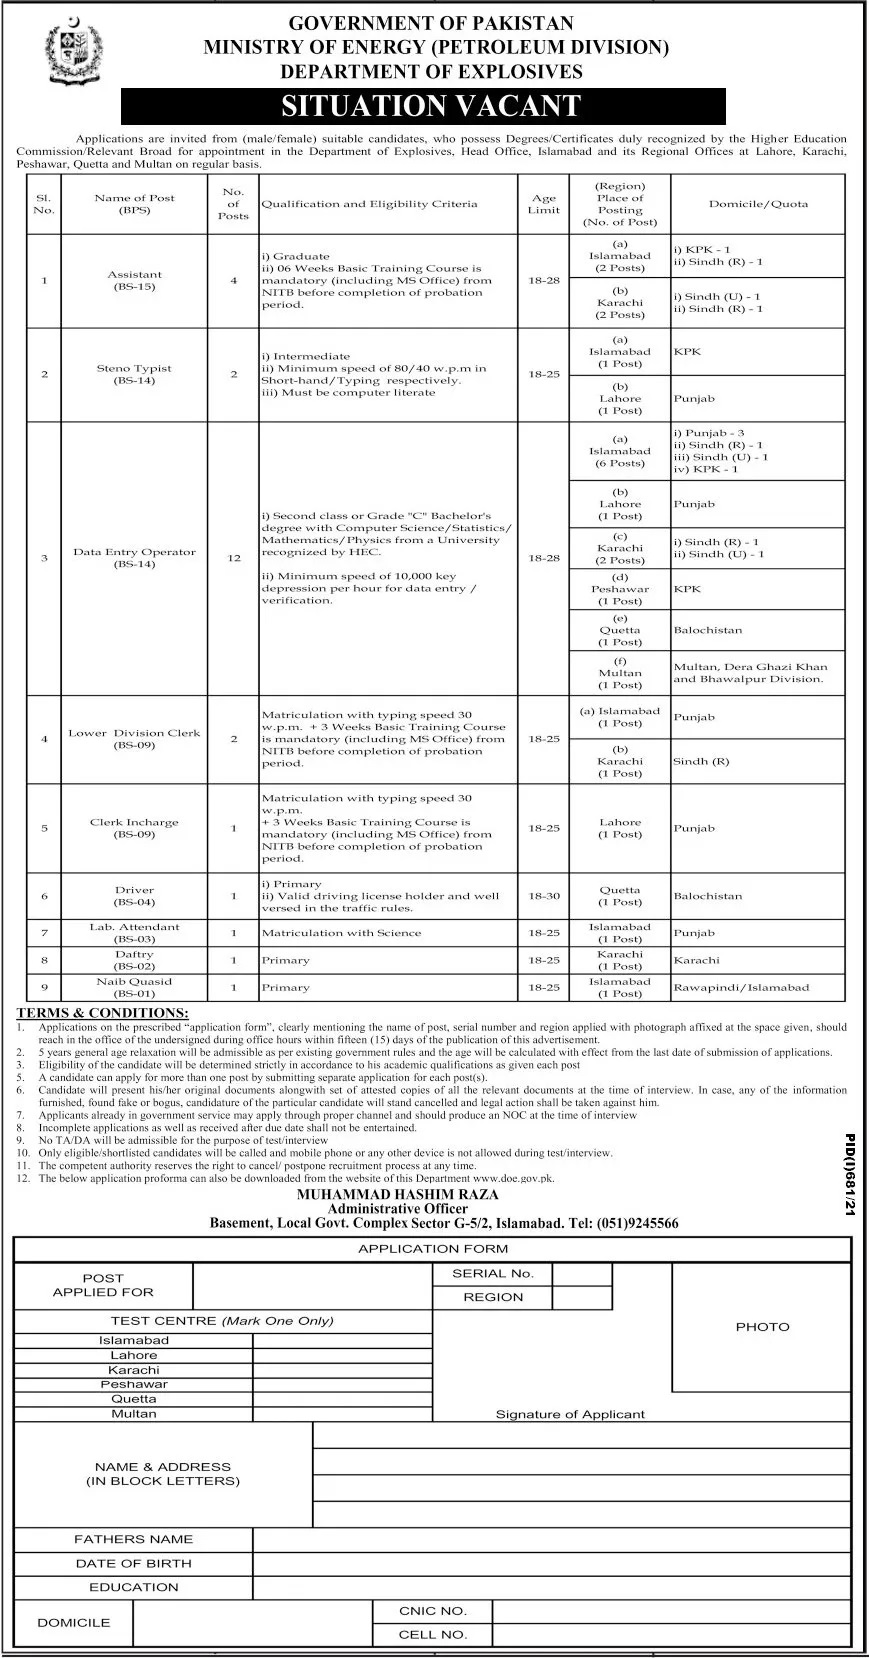 Govt Jobs Today in Pakistan At Ministry of Energy Petroleum Division